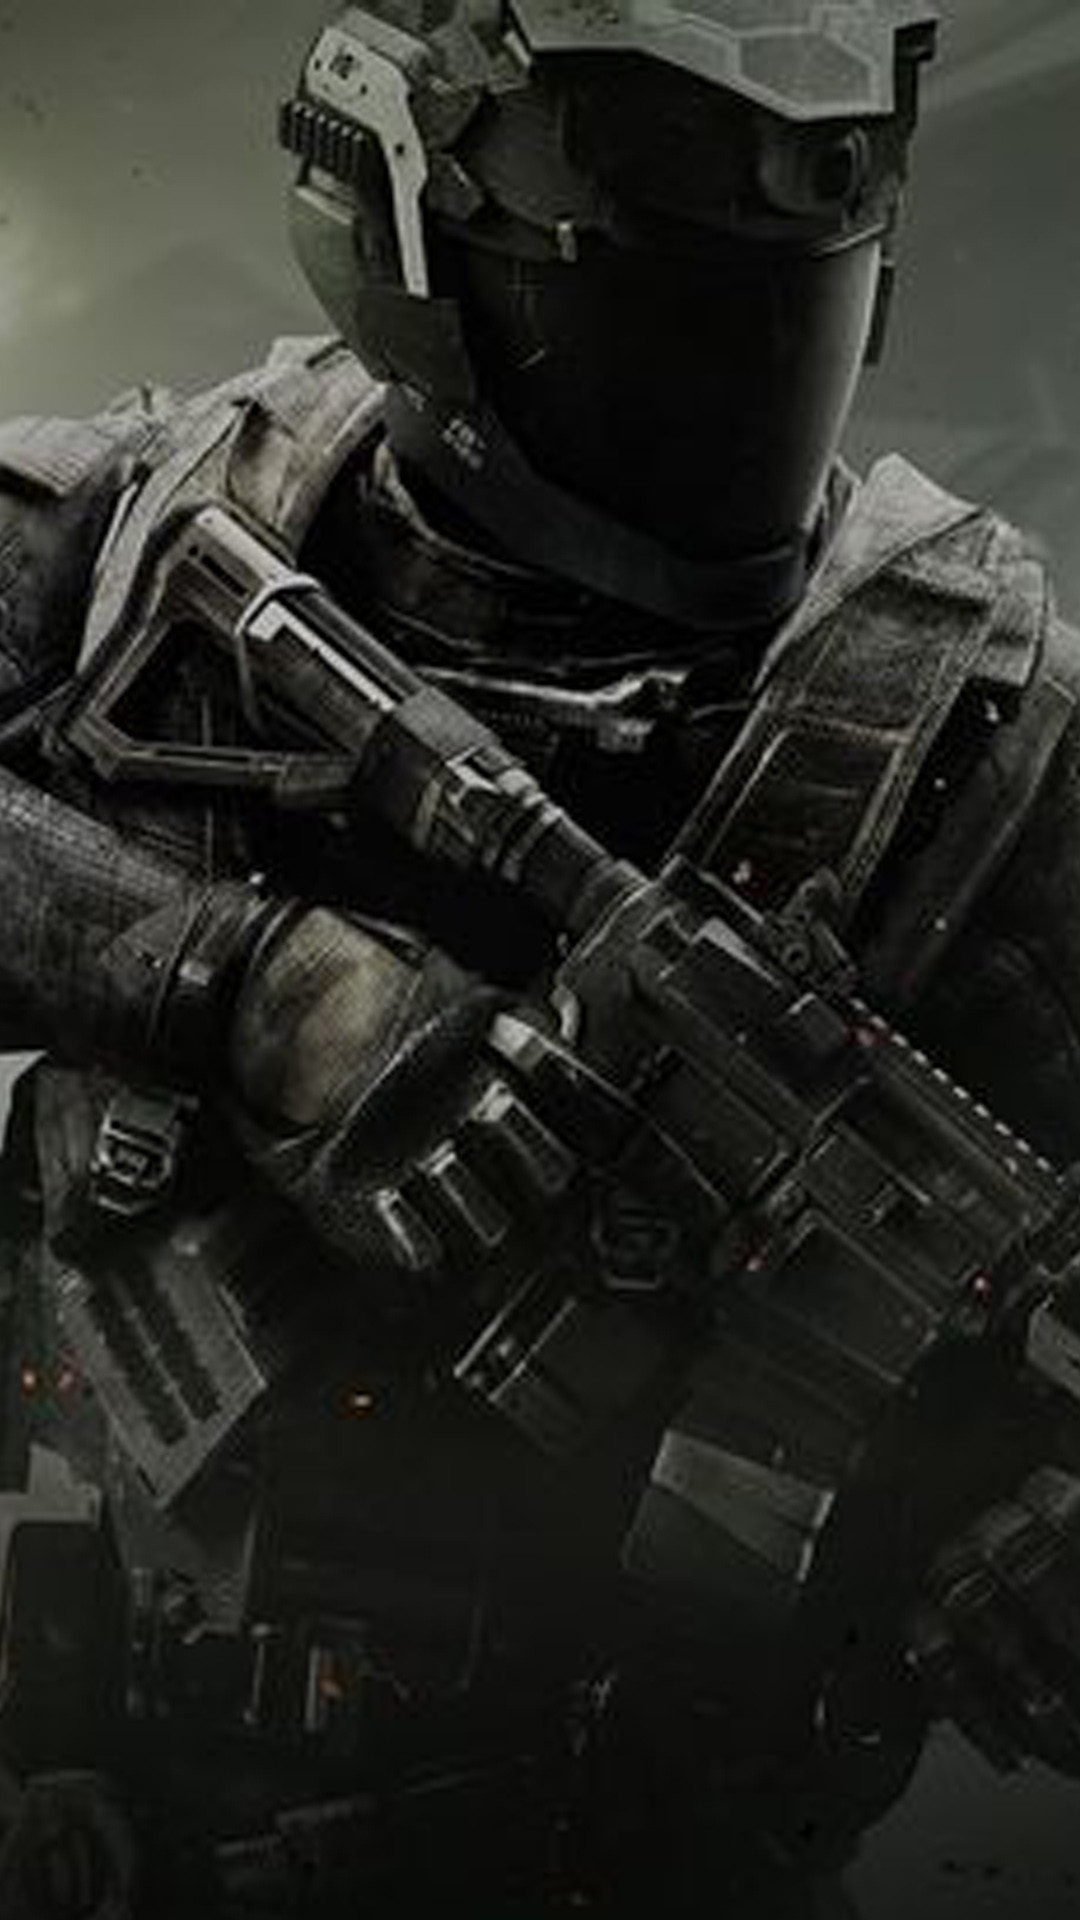 iphone 1080p iphone call of duty wallpapers